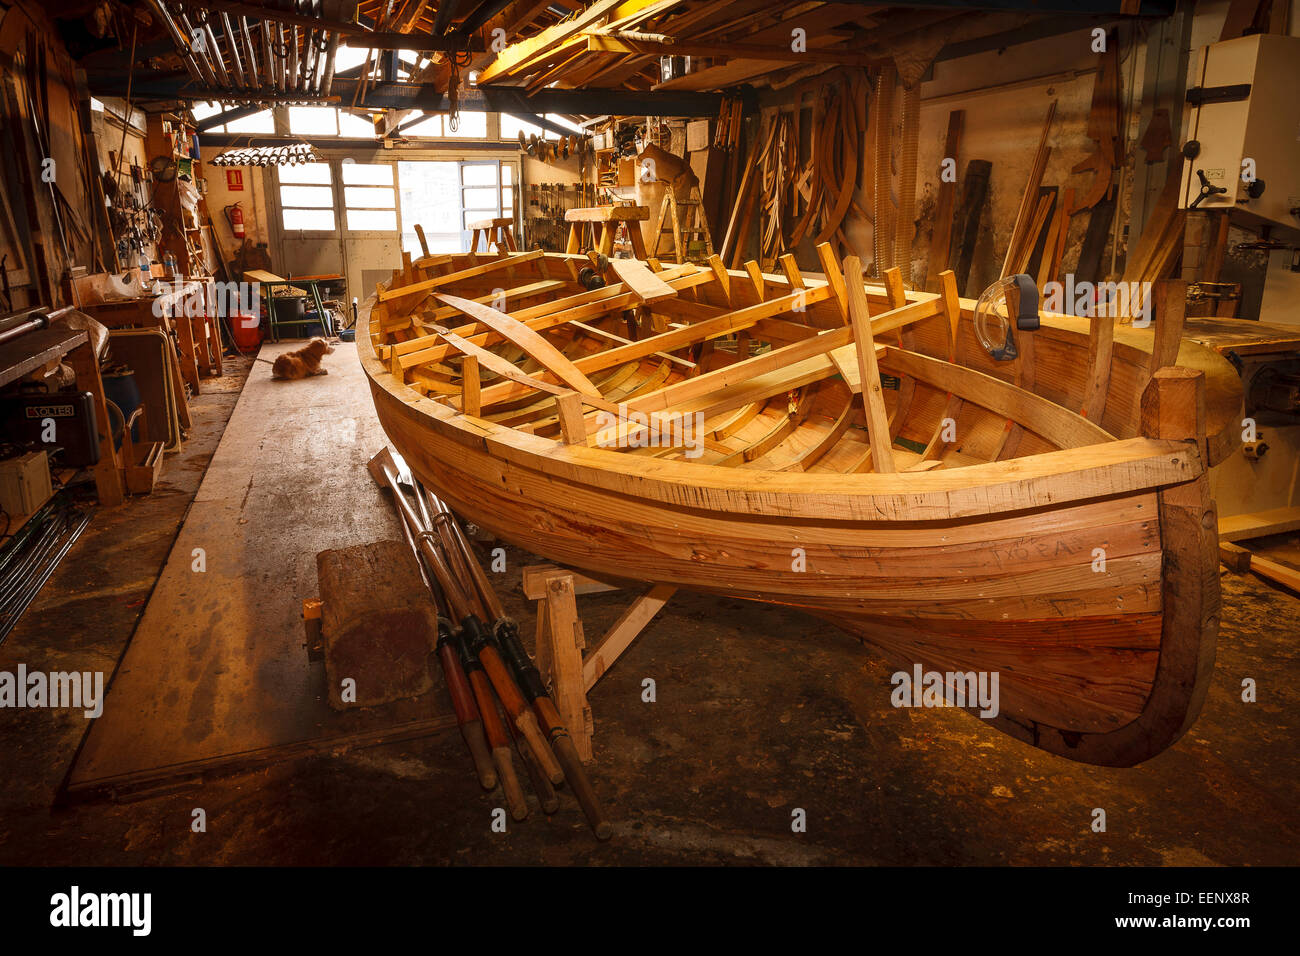 Building boat. Pasaia. Pasajes de San Juan. Guipuzcoa. Basque country. Spain. Europe - Stock Image